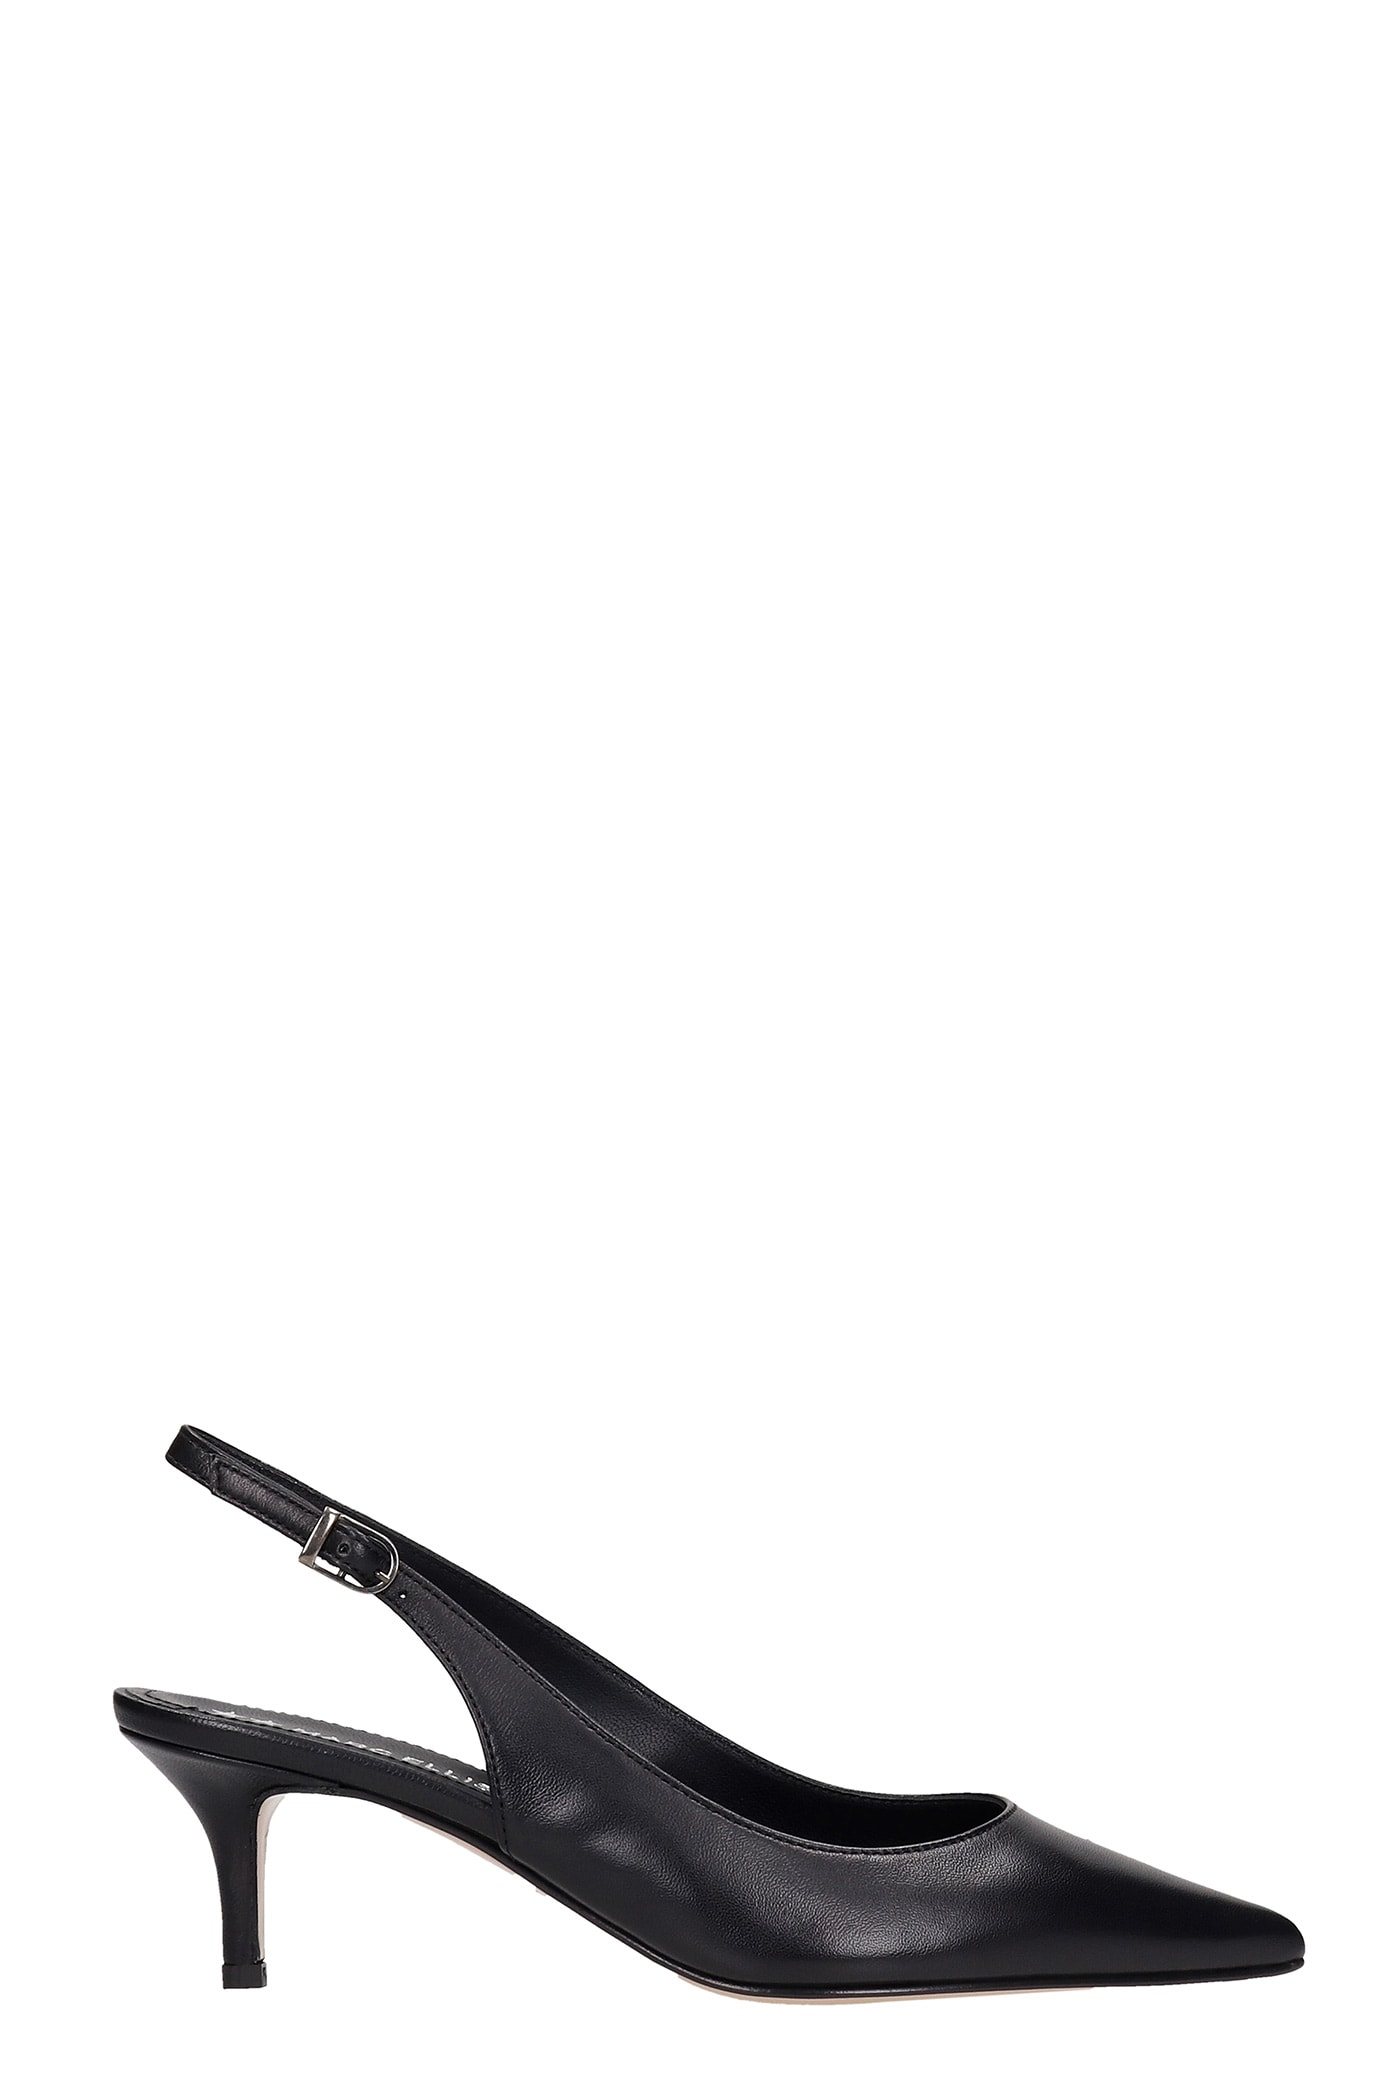 Summer Pumps In Black Leather